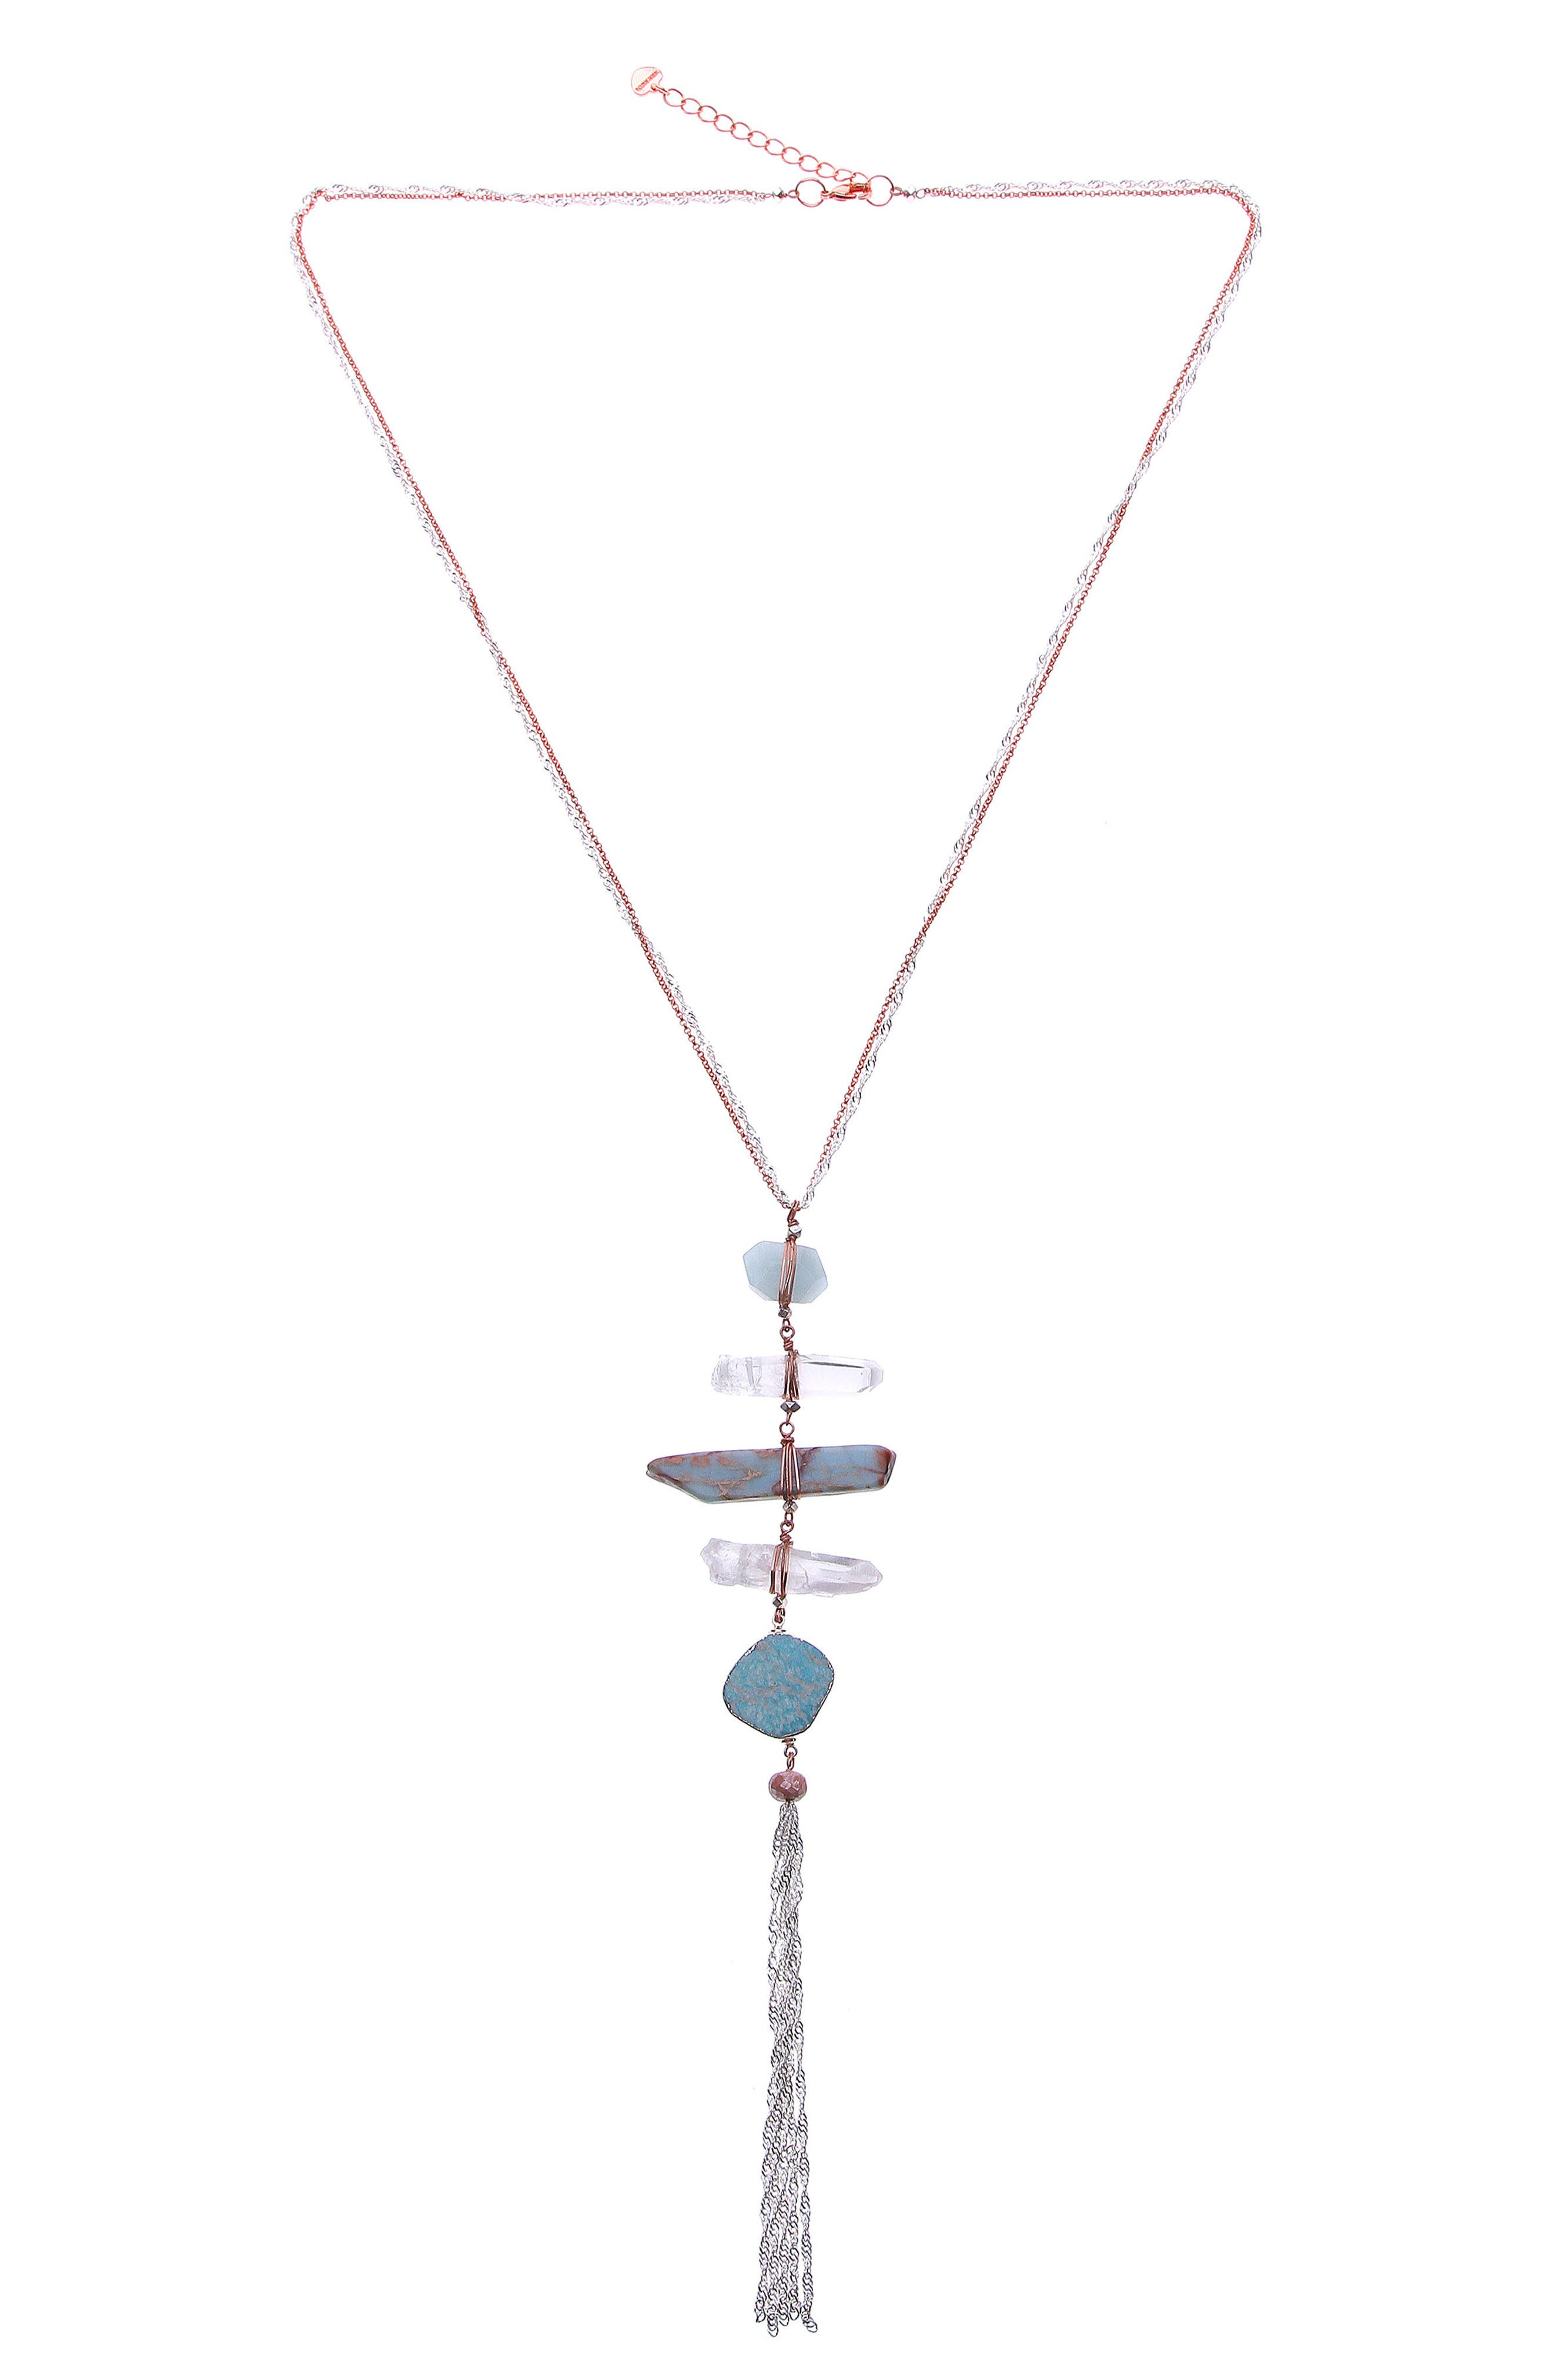 Raw Amazonite & Crystal Y-Necklace,                             Main thumbnail 1, color,                             400